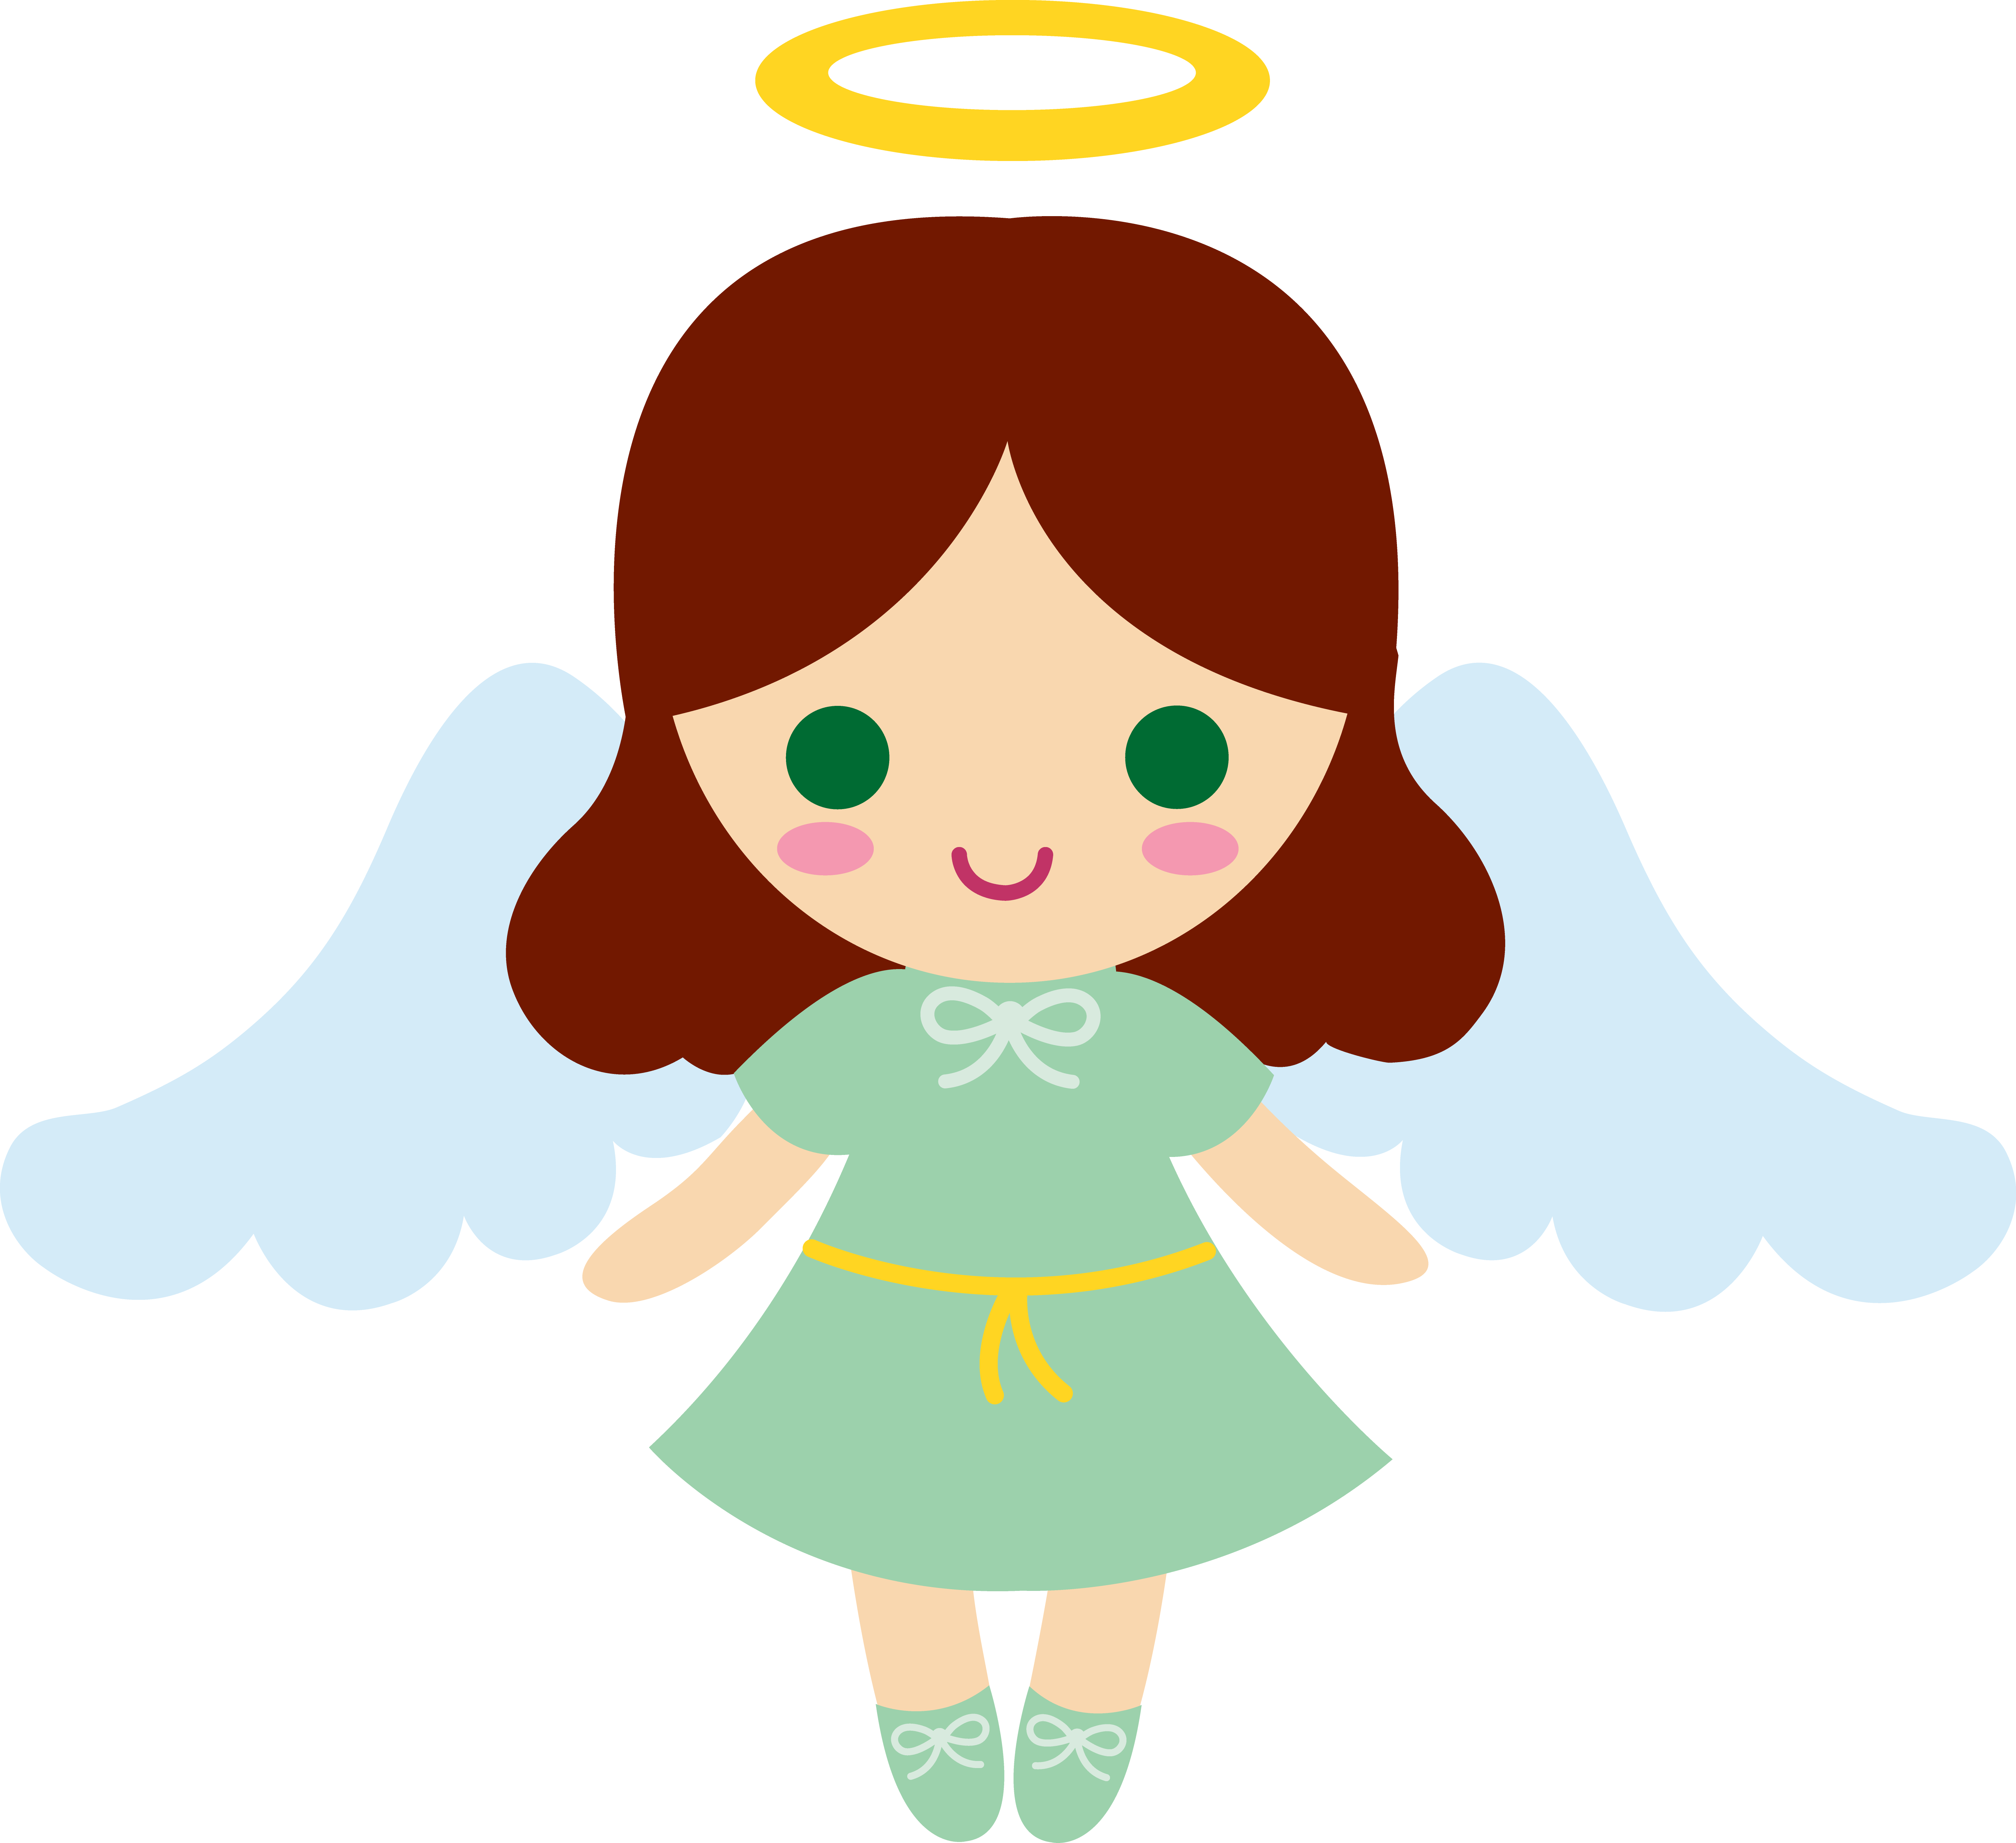 Half of my heart is in heaven with my angel clipart svg freeuse stock Cartoon Angel Clipart at GetDrawings.com | Free for personal use ... svg freeuse stock